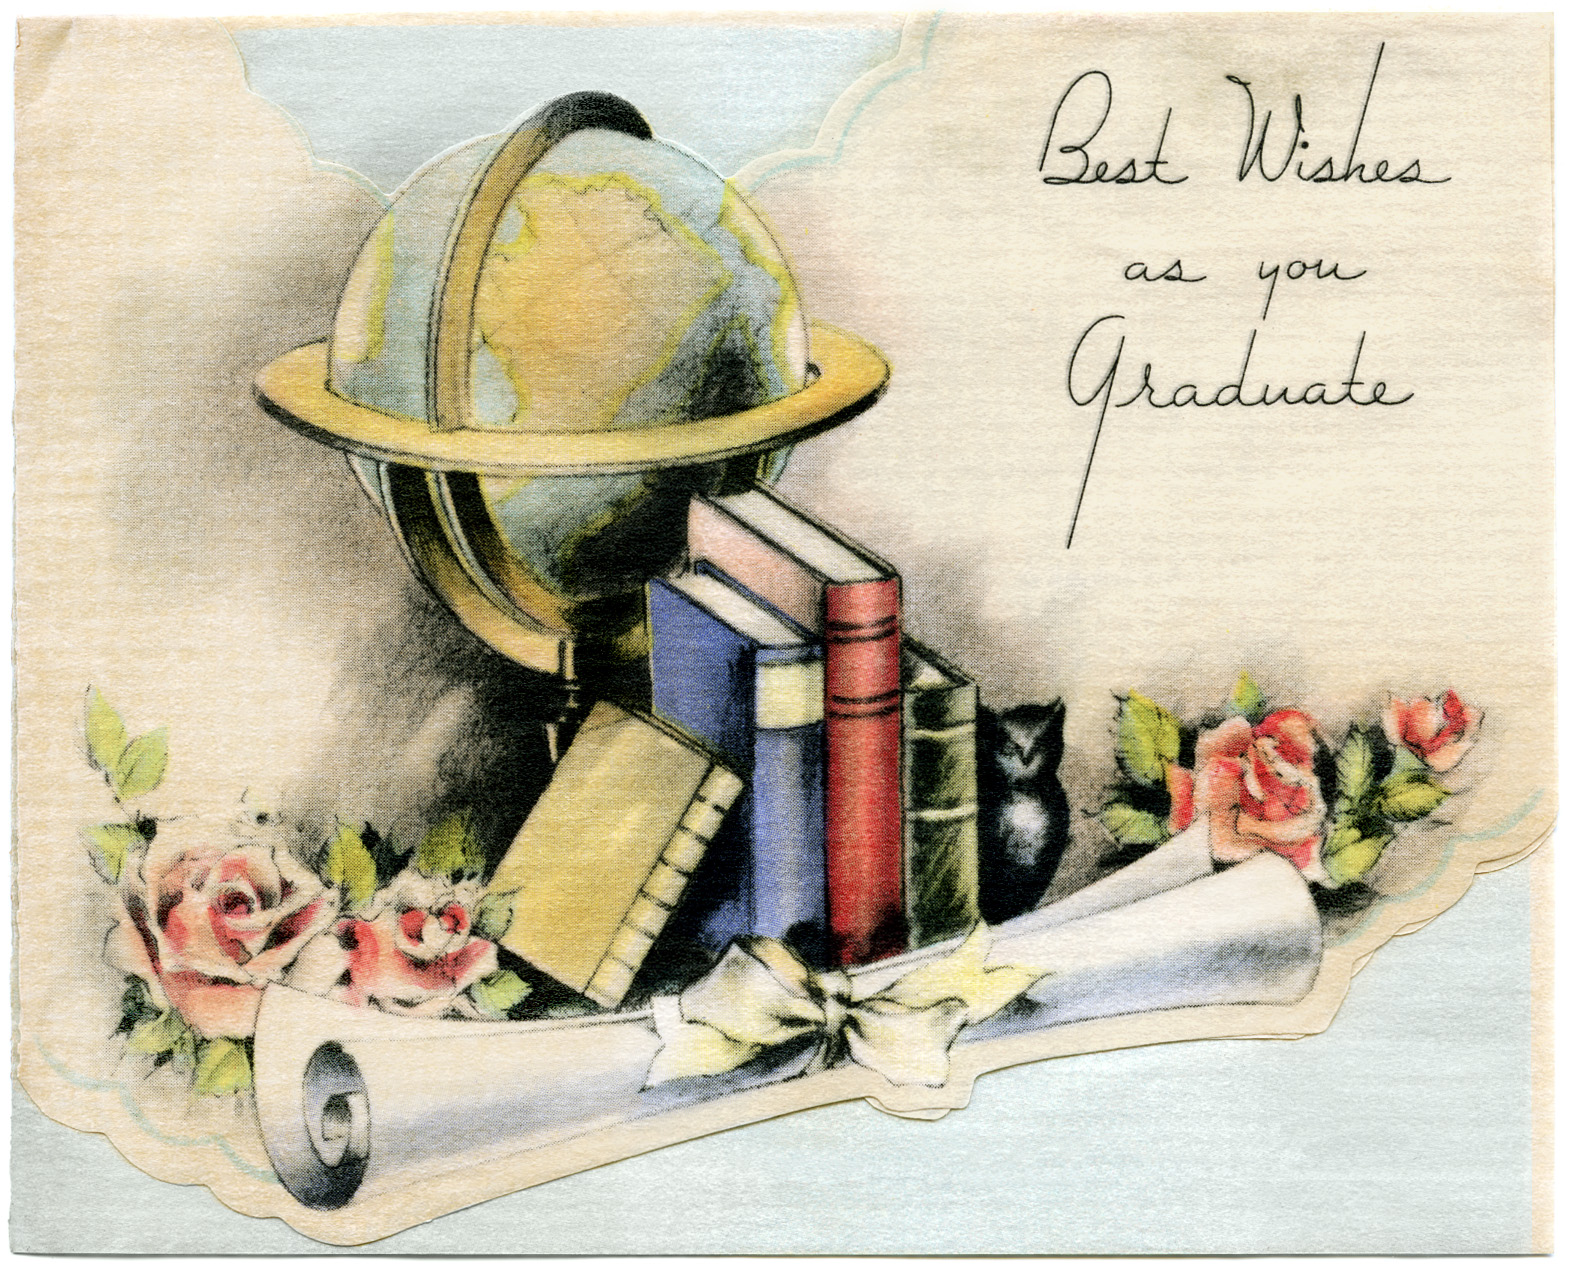 Vintage Graduation Card Old Design Shop Blog